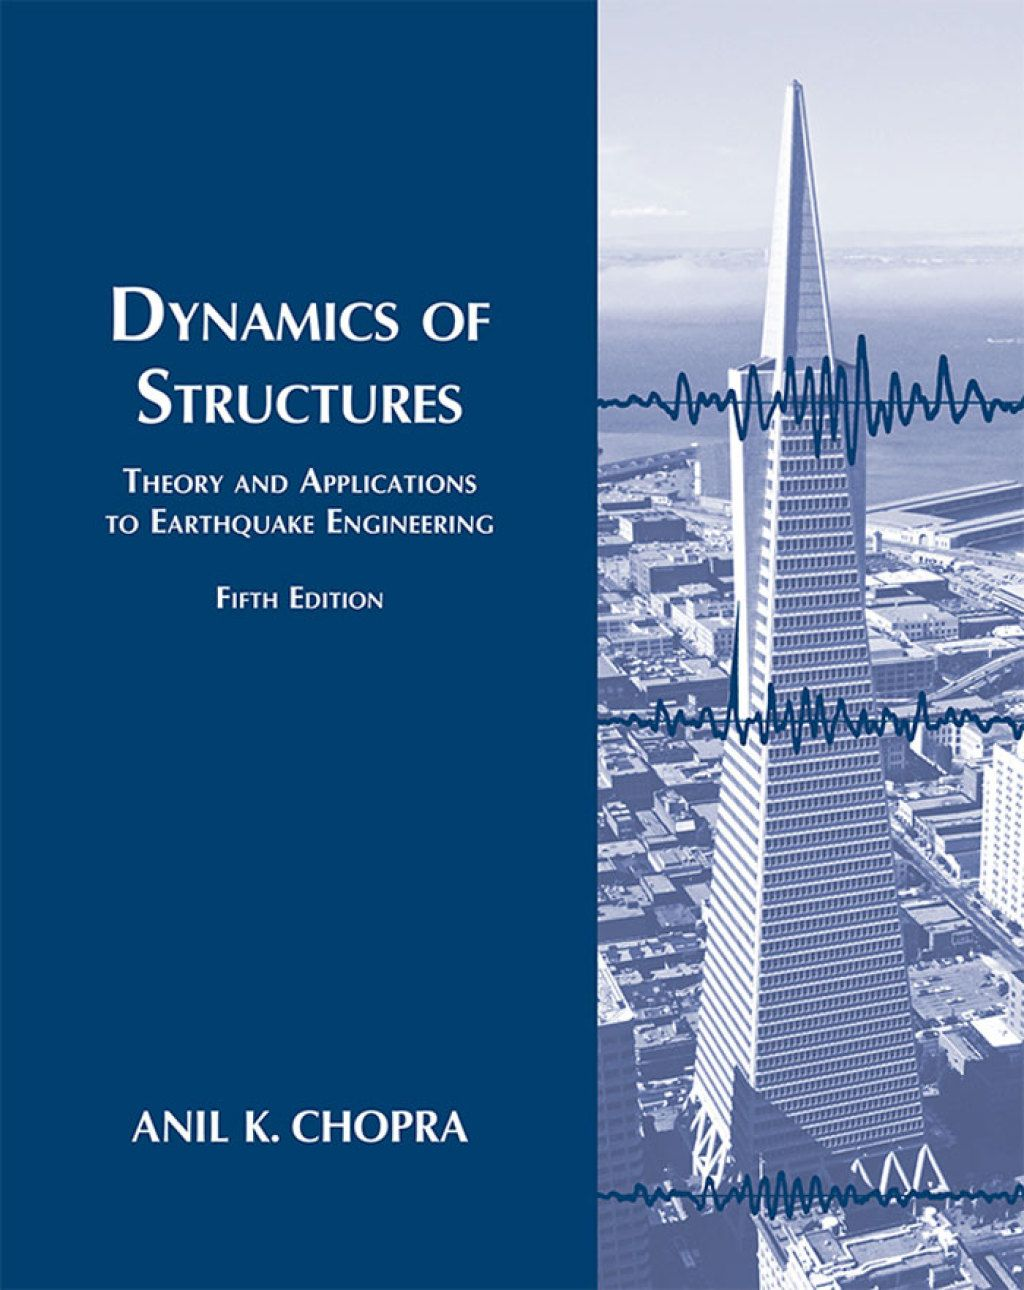 Dynamics of Structures (POD File) (eBook Rental) (With